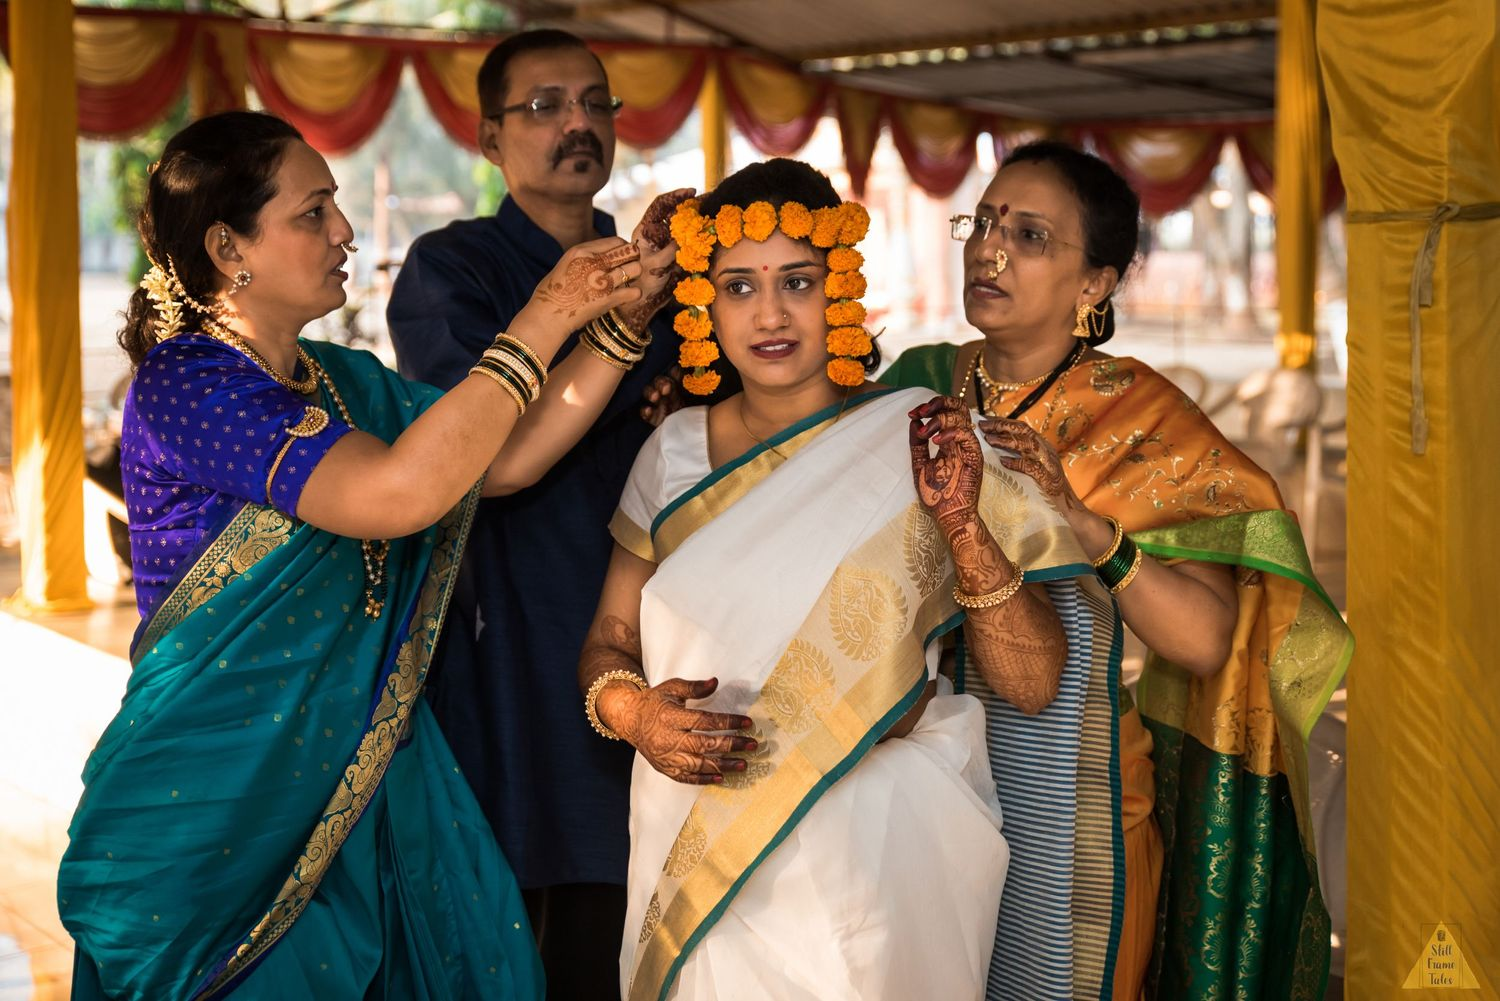 Relatives helping bride with her preparation for a wedding day  puja